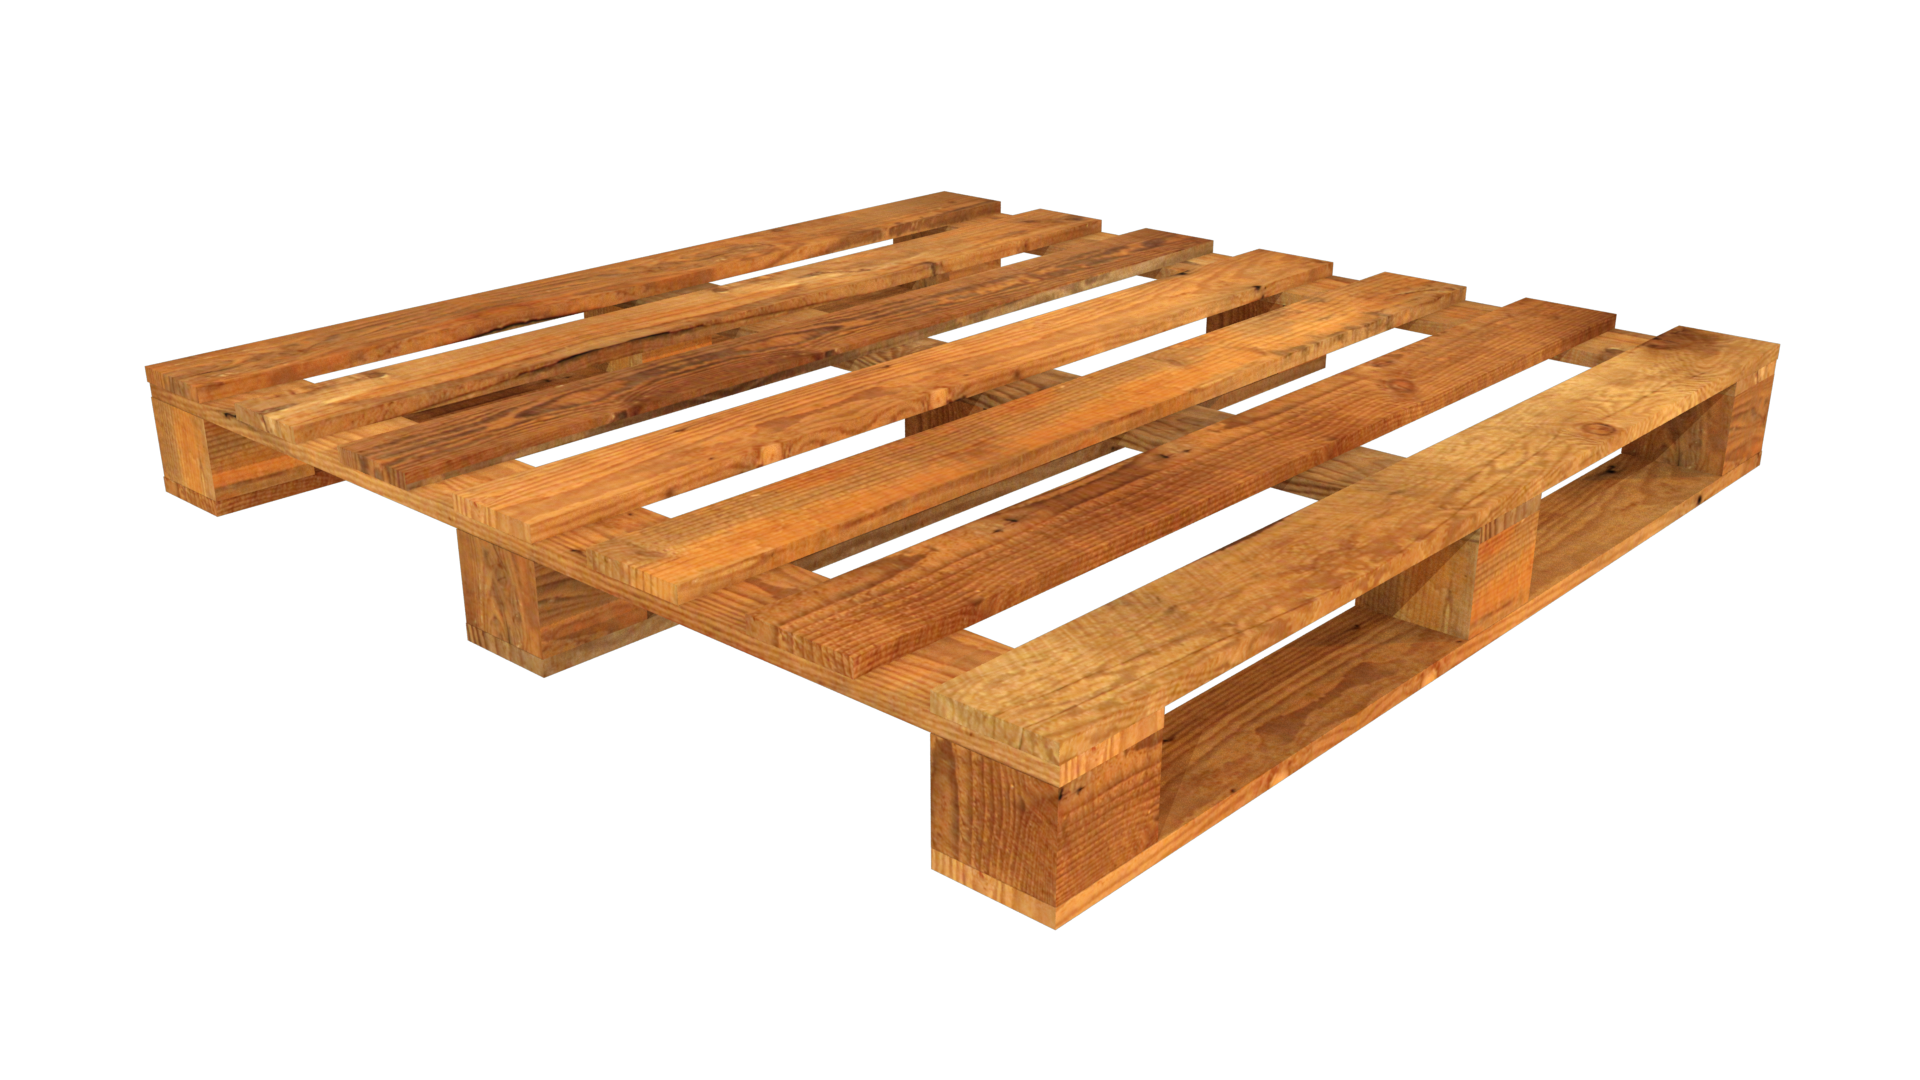 Wooden Pallet Types Malaysia | Two Way Four Way Wooden Pallet